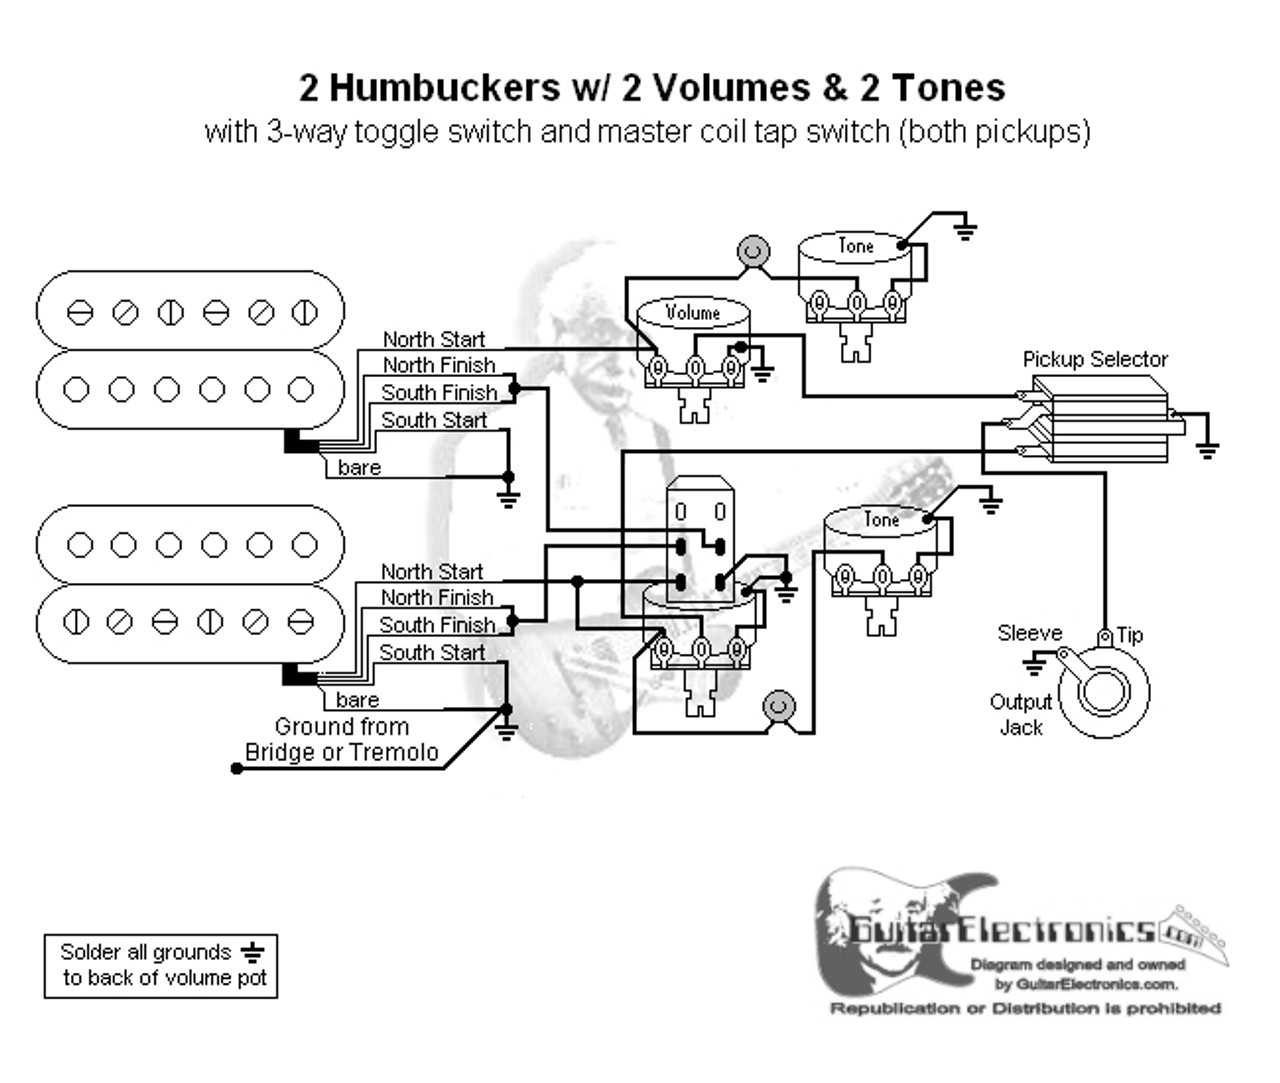 coil tap wiring diagram electrical schematic wiring diagram fender lead ii wiring diagram 2 humbuckers 3 [ 1280 x 1083 Pixel ]